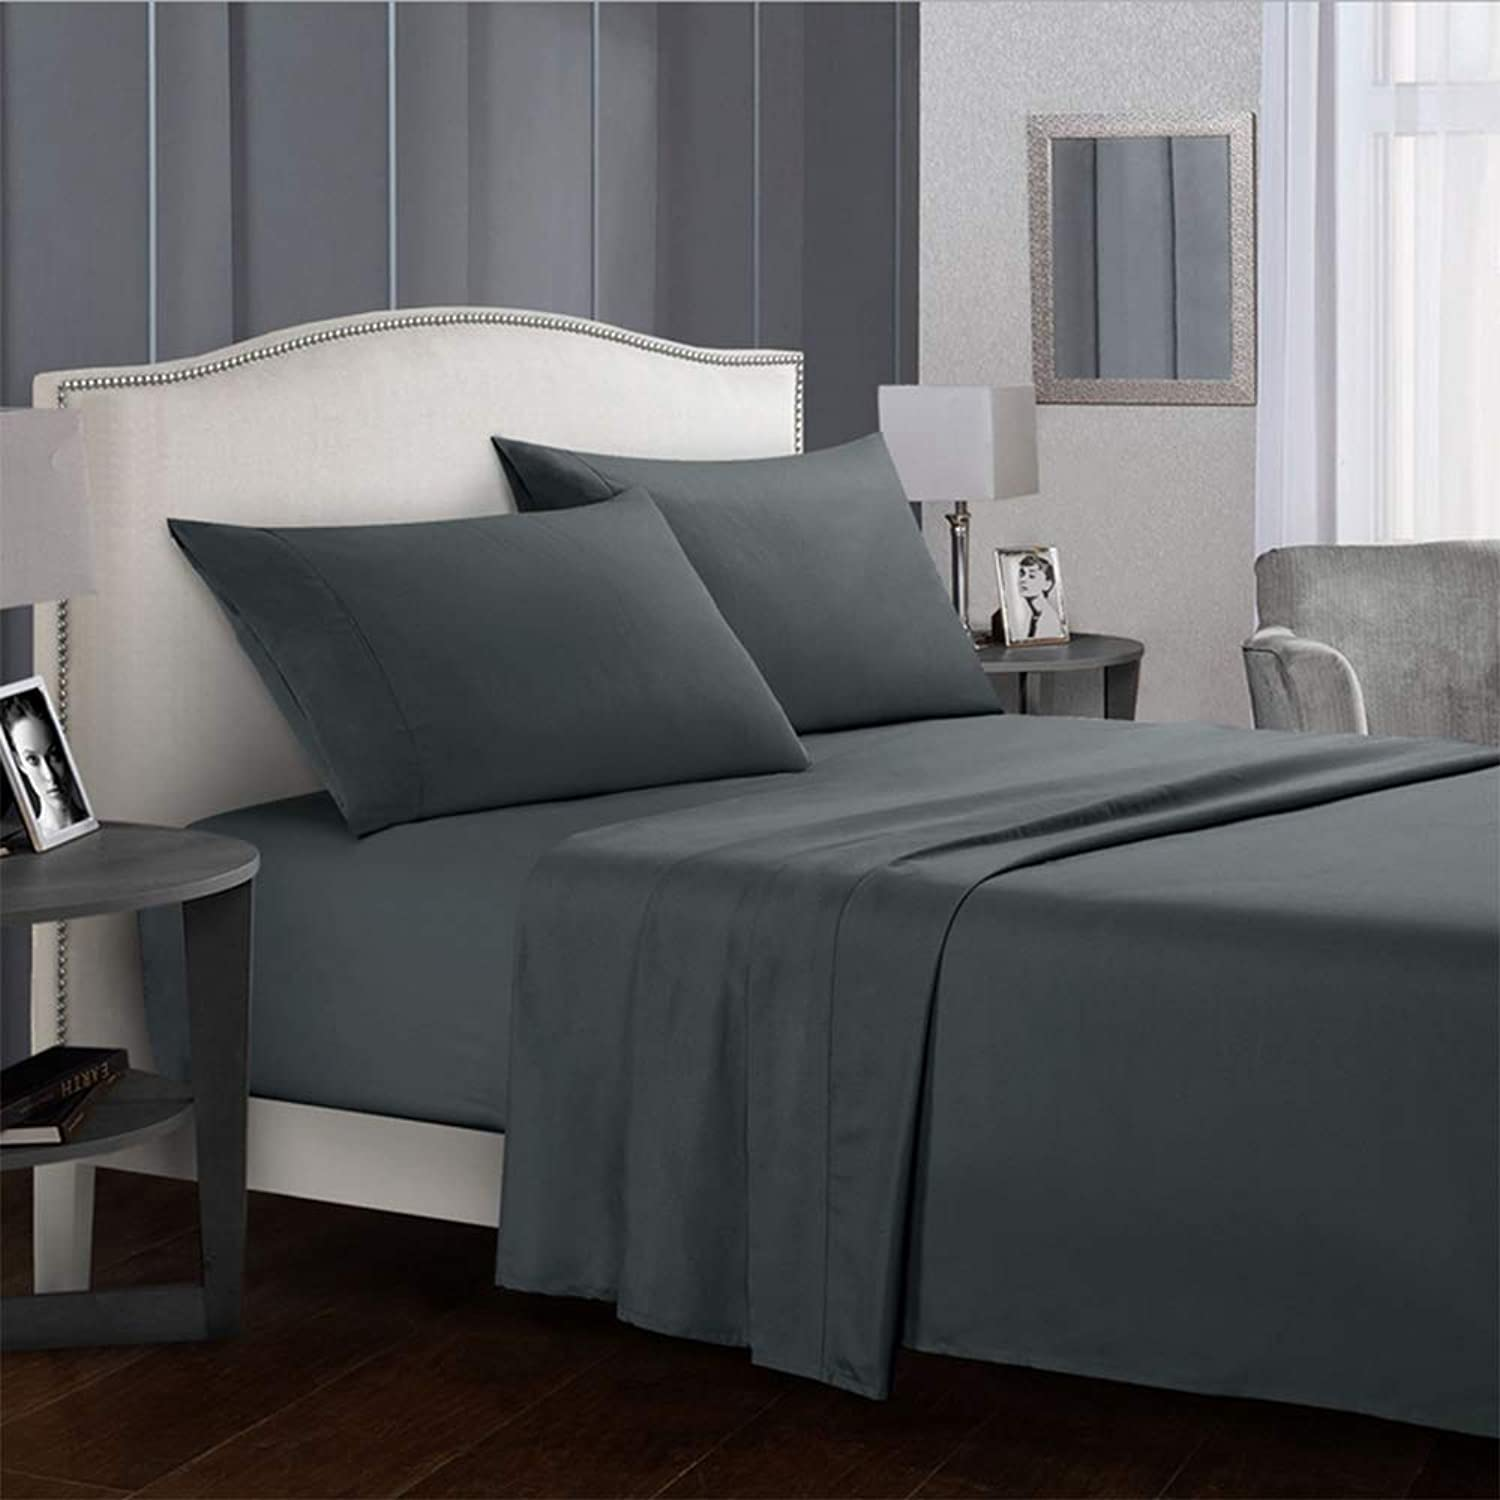 Young Forever Bed Sheet Set - Soft Brushed Microfiber Wrinkle Fade and Stain Resistant 4-Piece Queen Bed Sheet Set - Grey